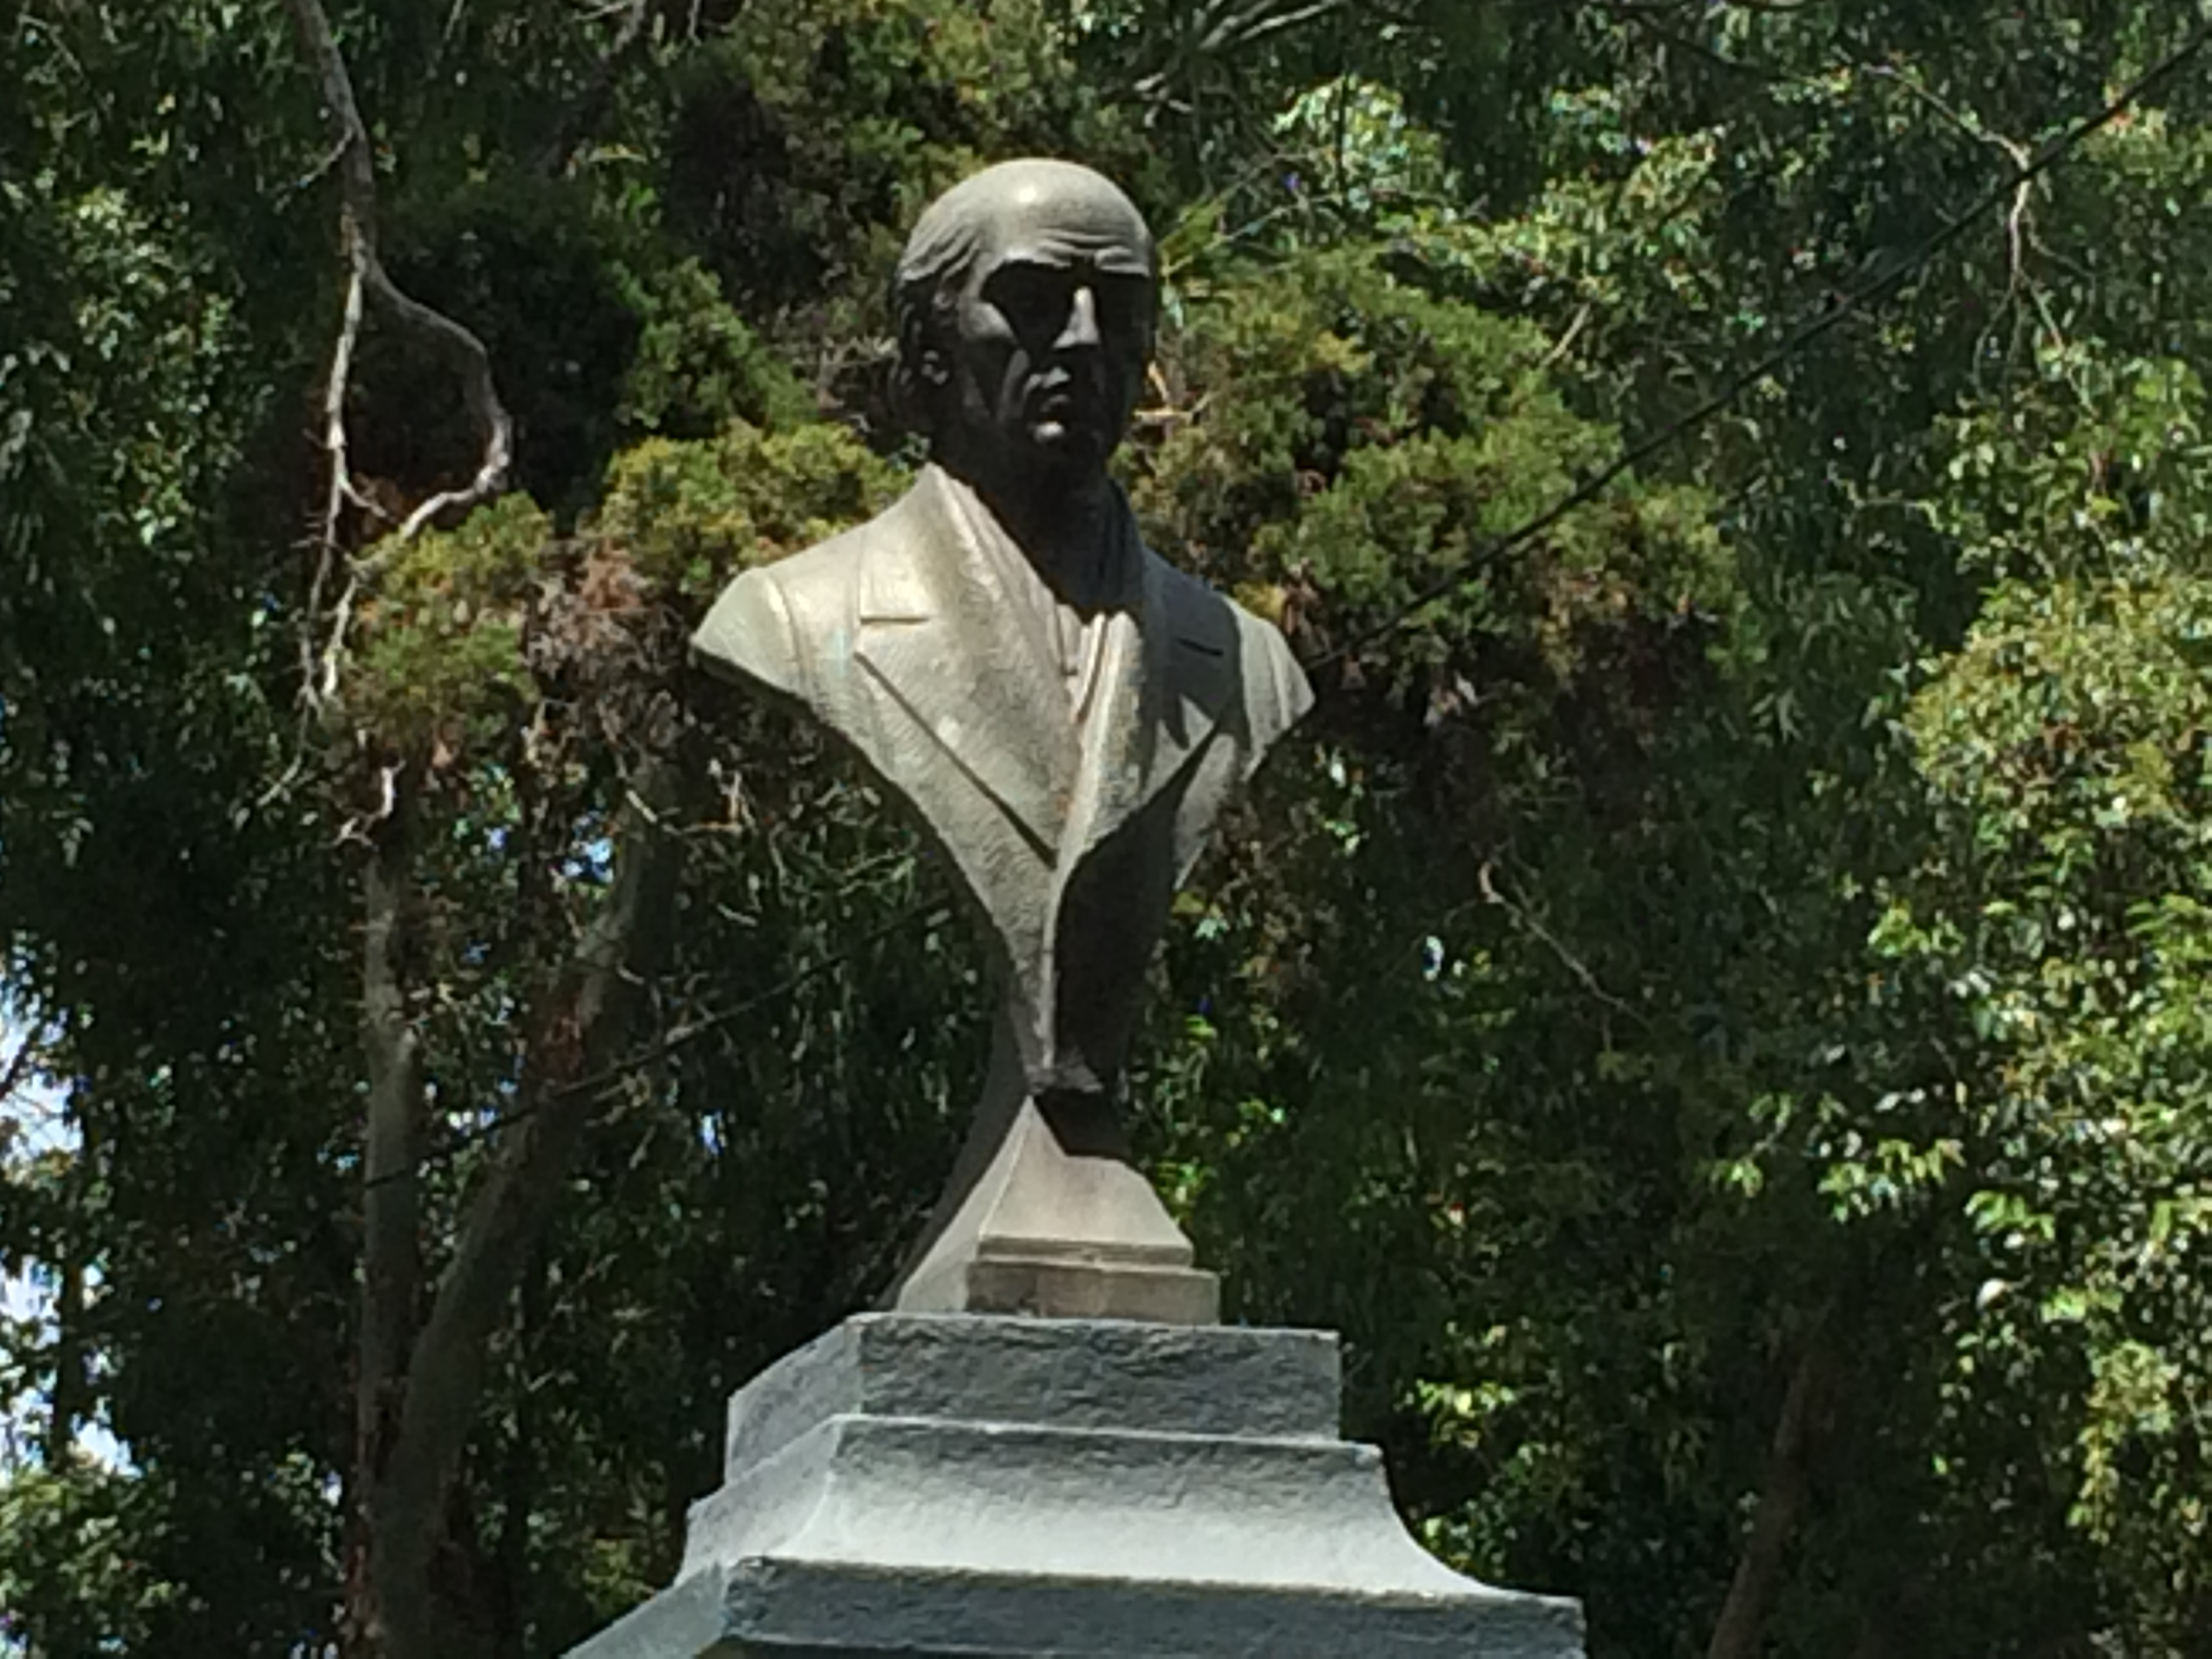 Hidalgo bust from 1969 by sculptor E. Tambriz